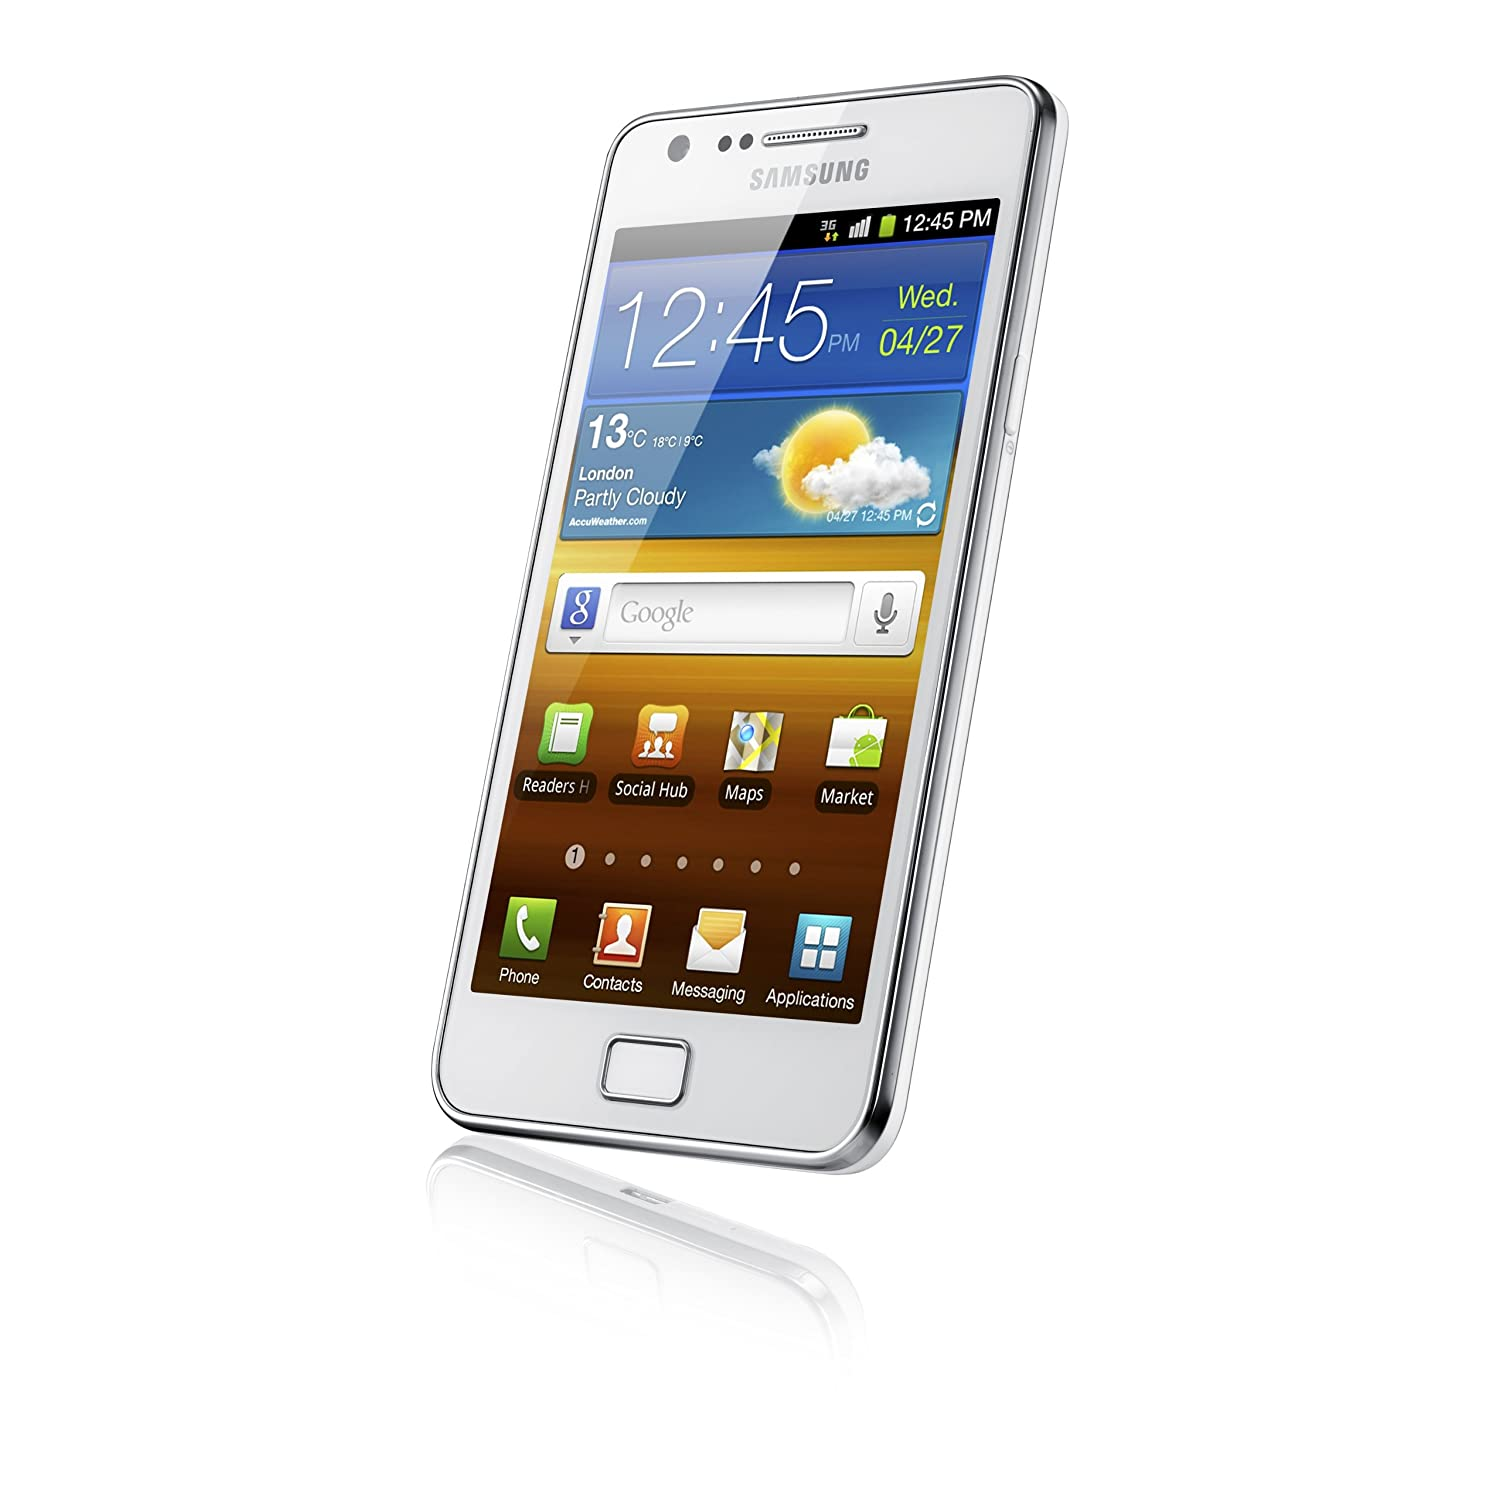 Samsung i9100 galaxy s ii 16gb sim free smartphone amazon samsung i9100 galaxy s ii 16gb sim free smartphone amazon electronics ccuart Image collections